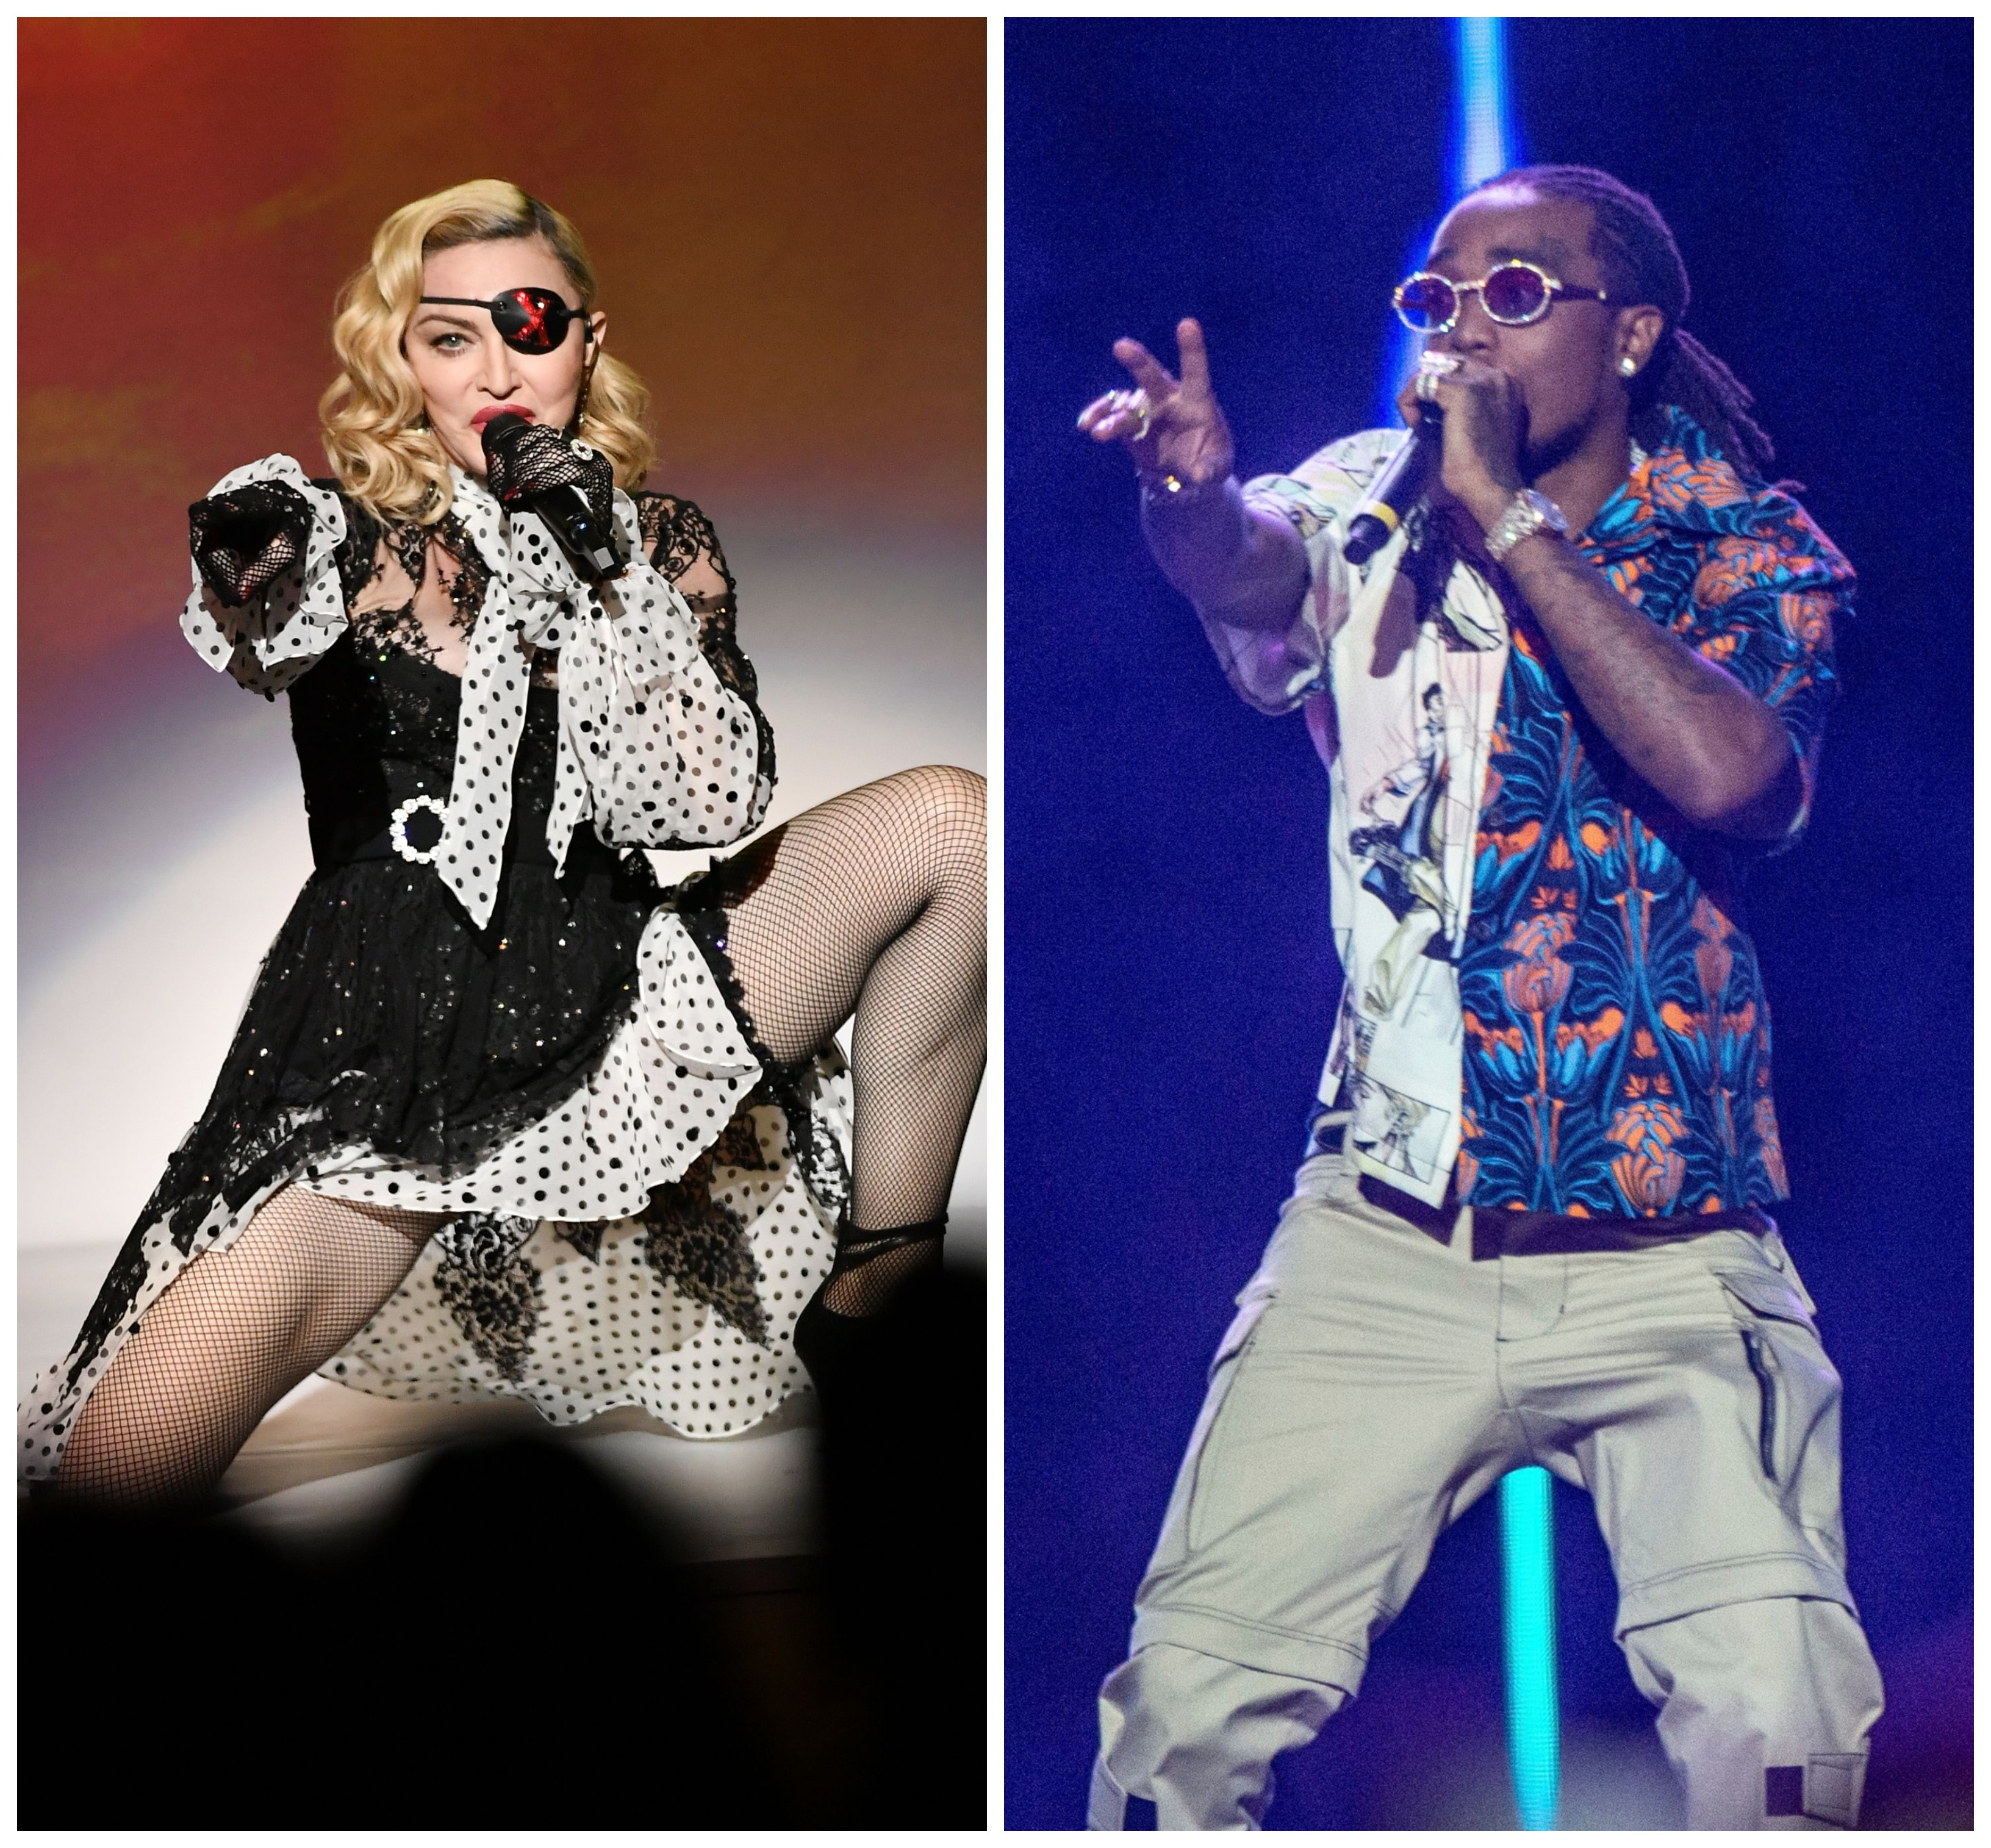 Madonna and Quavo Welcome the 'Future' in New Song